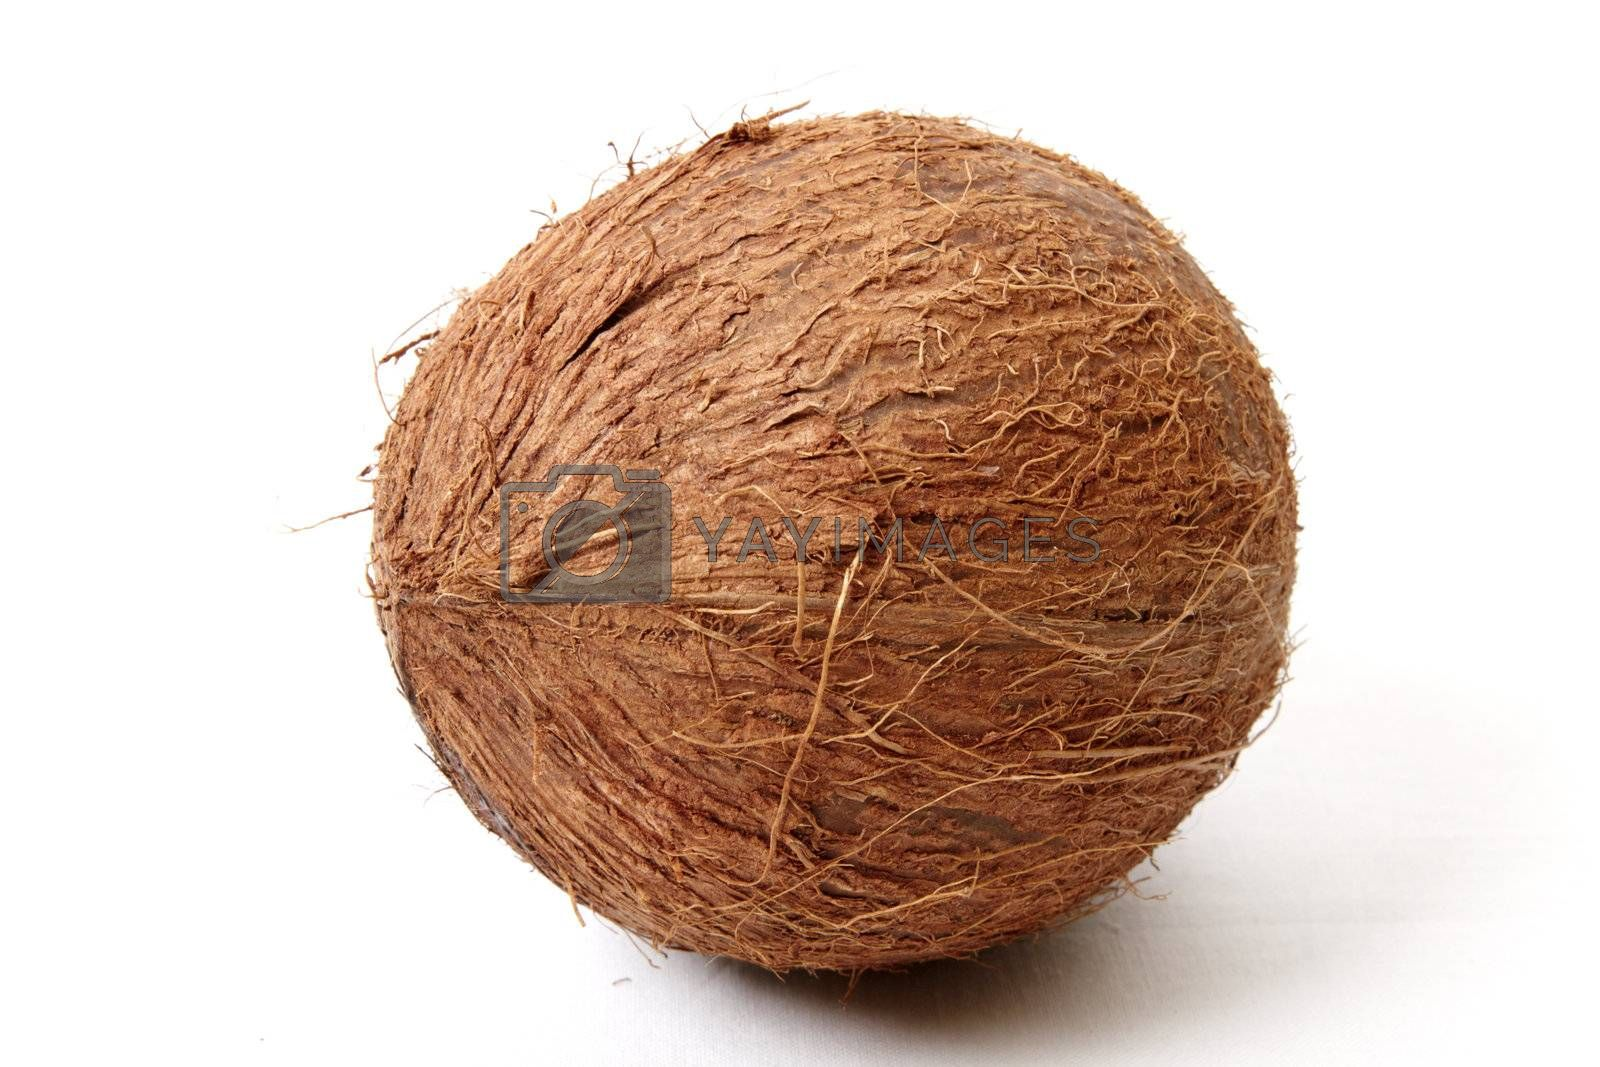 Coconut isolated on a white background. Close up image